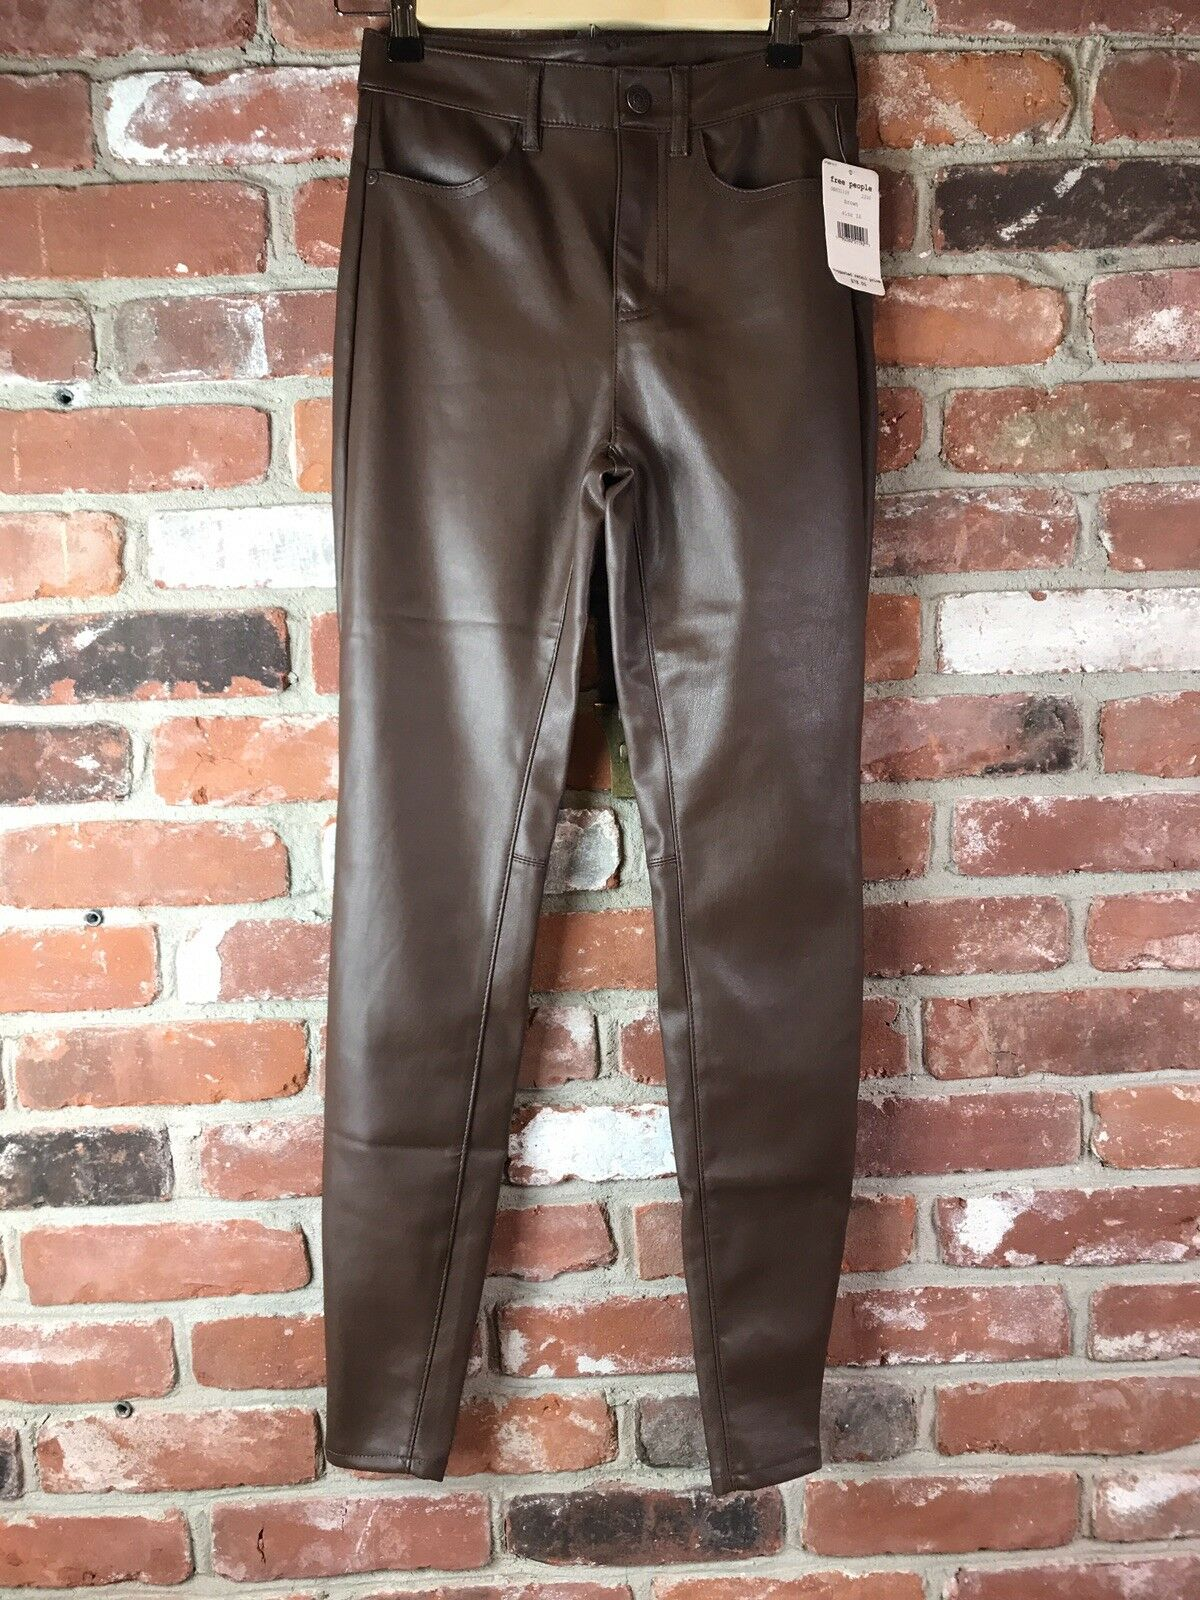 NWT Free People Faux Leather Skinny Pants Size 26